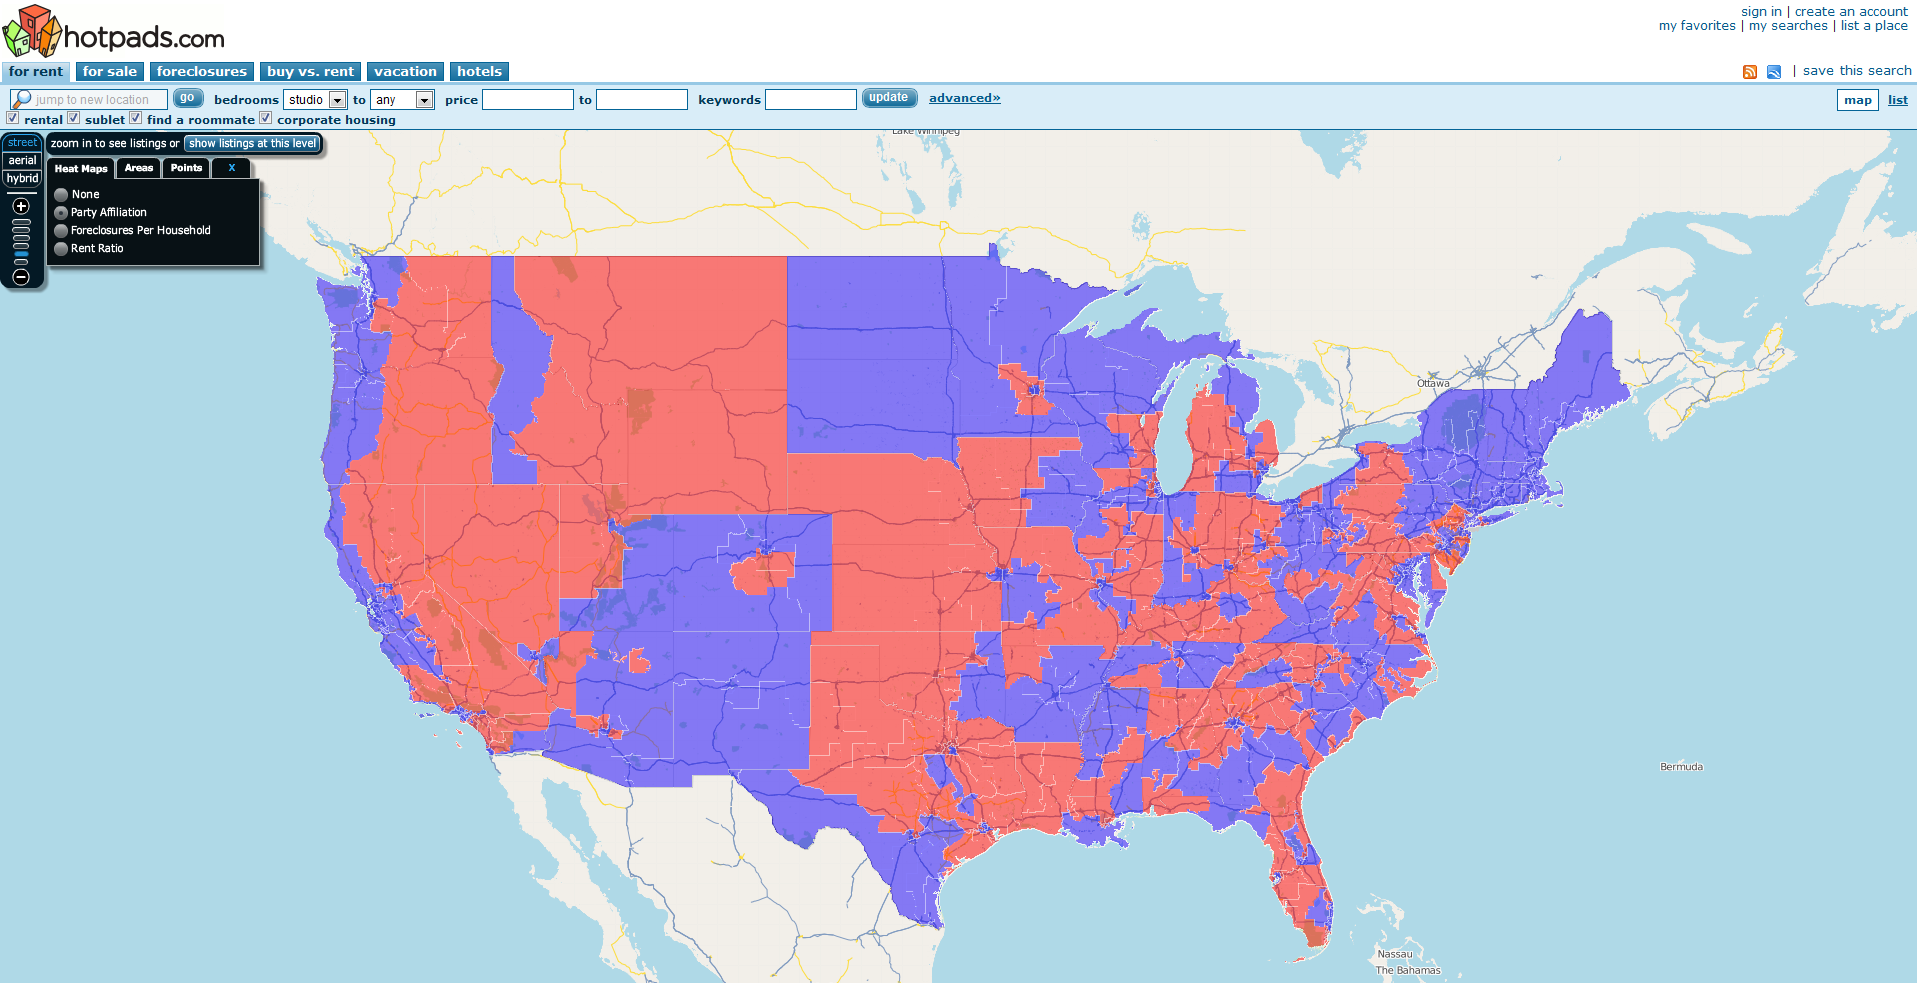 HotPads Foreclosure Maps Heat Up Congressional Elections - Us political party map